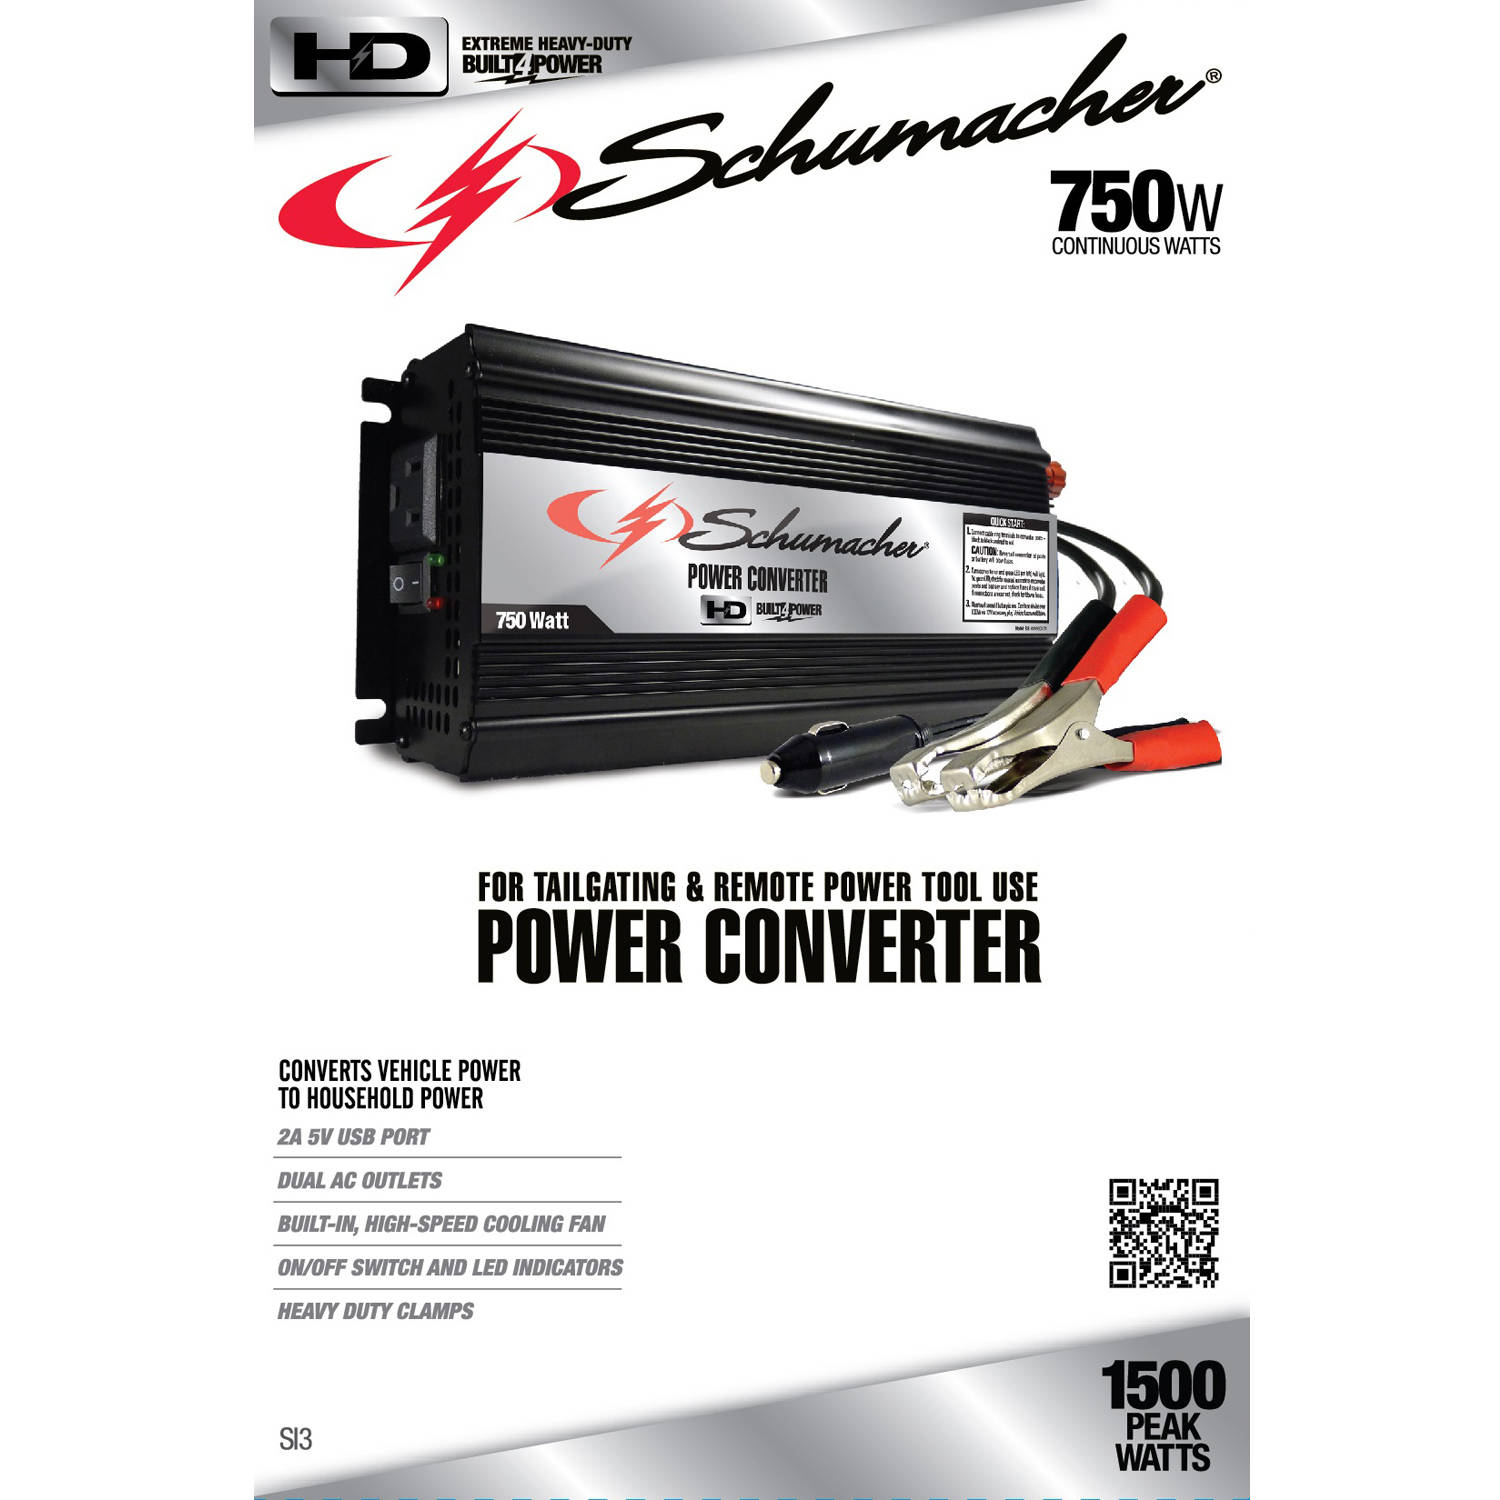 Schumacher Electric 750w Power Converter Automatic Switching For Battery 8211 Usb Connection